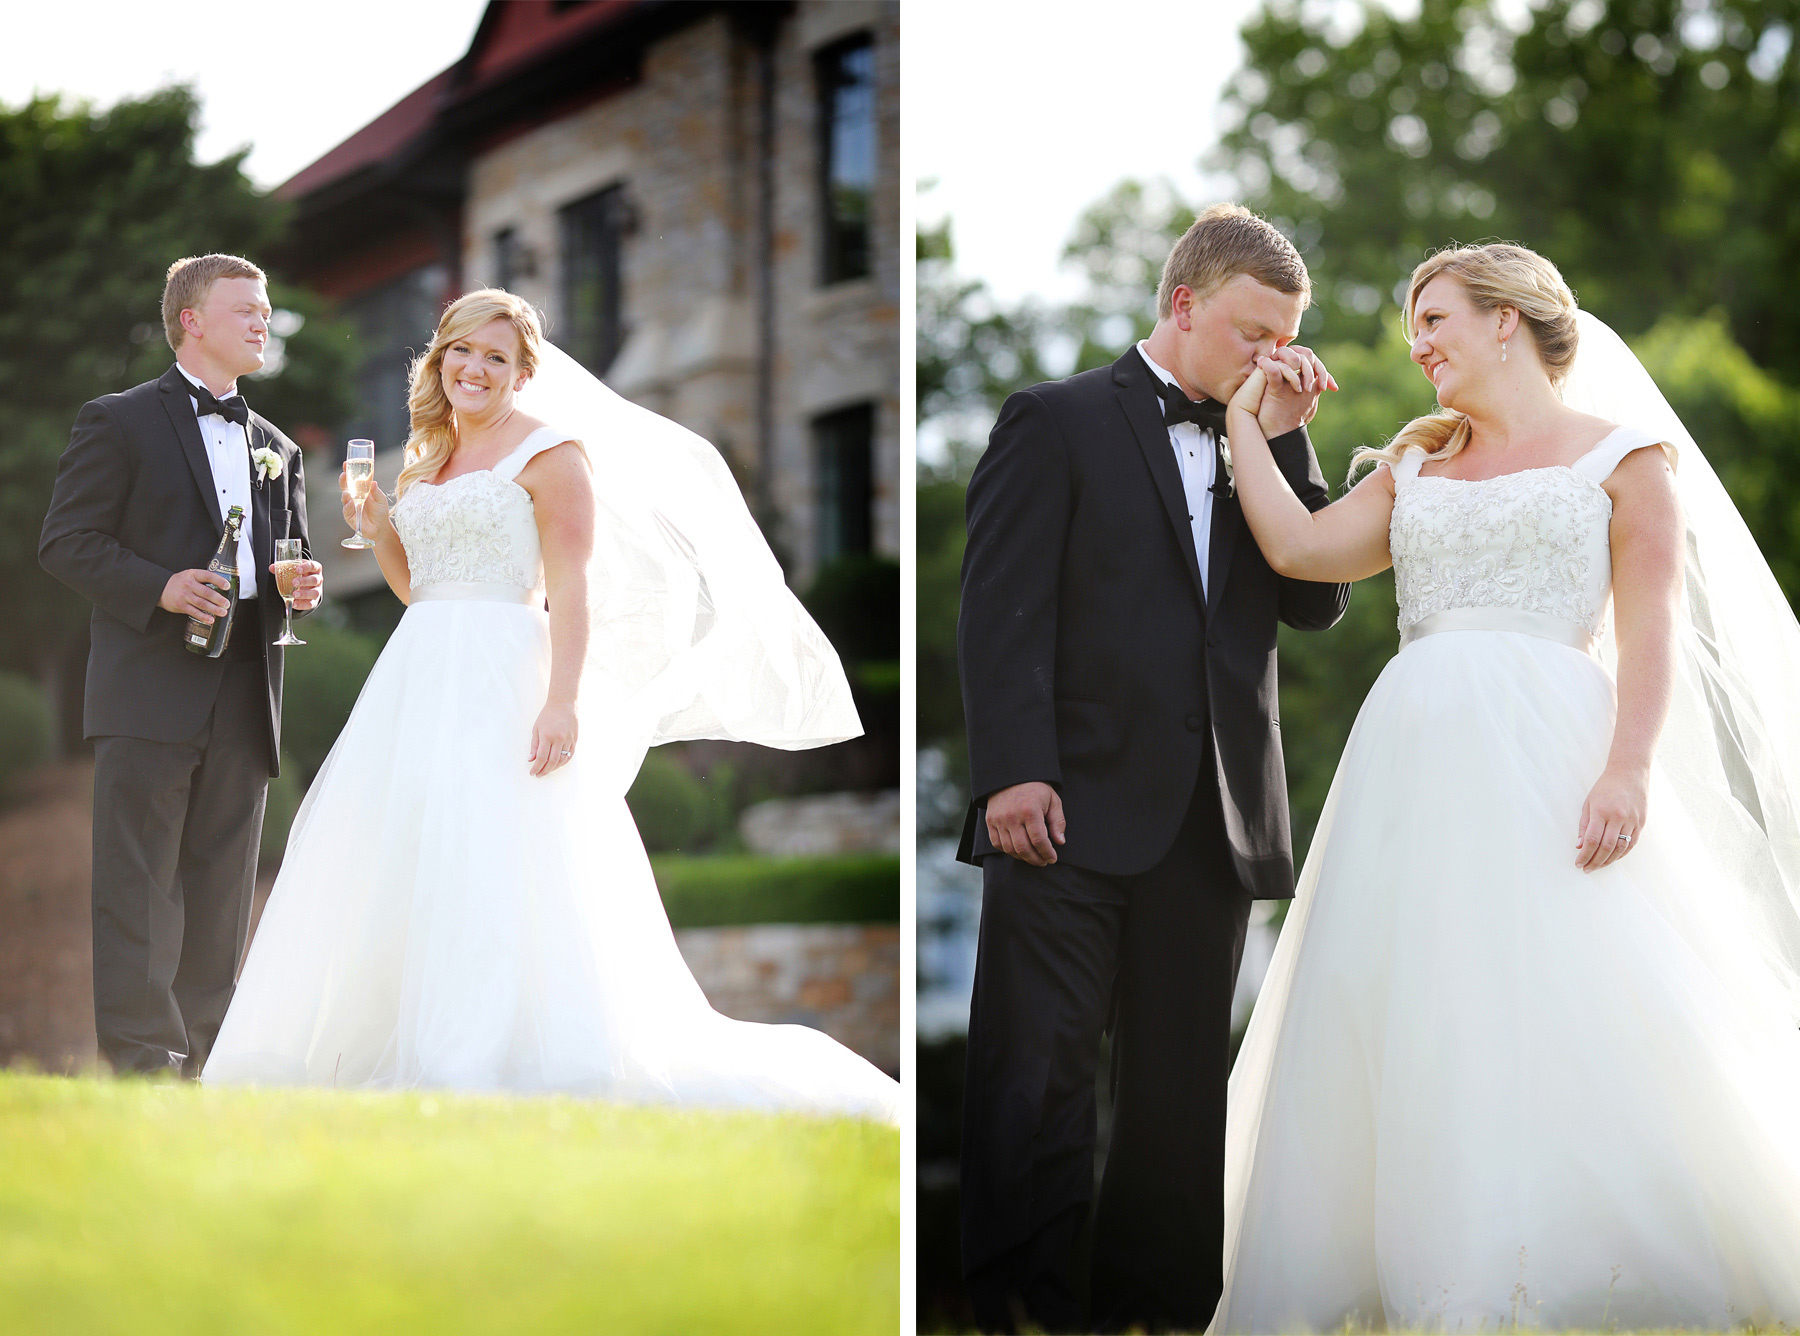 13-Minneapolis-Minnesota-Wedding-Photography-by-Vick-Photography-Van-Dusen-Mansion-Outdoor-Toasting-Taryn-&-Scott.jpg